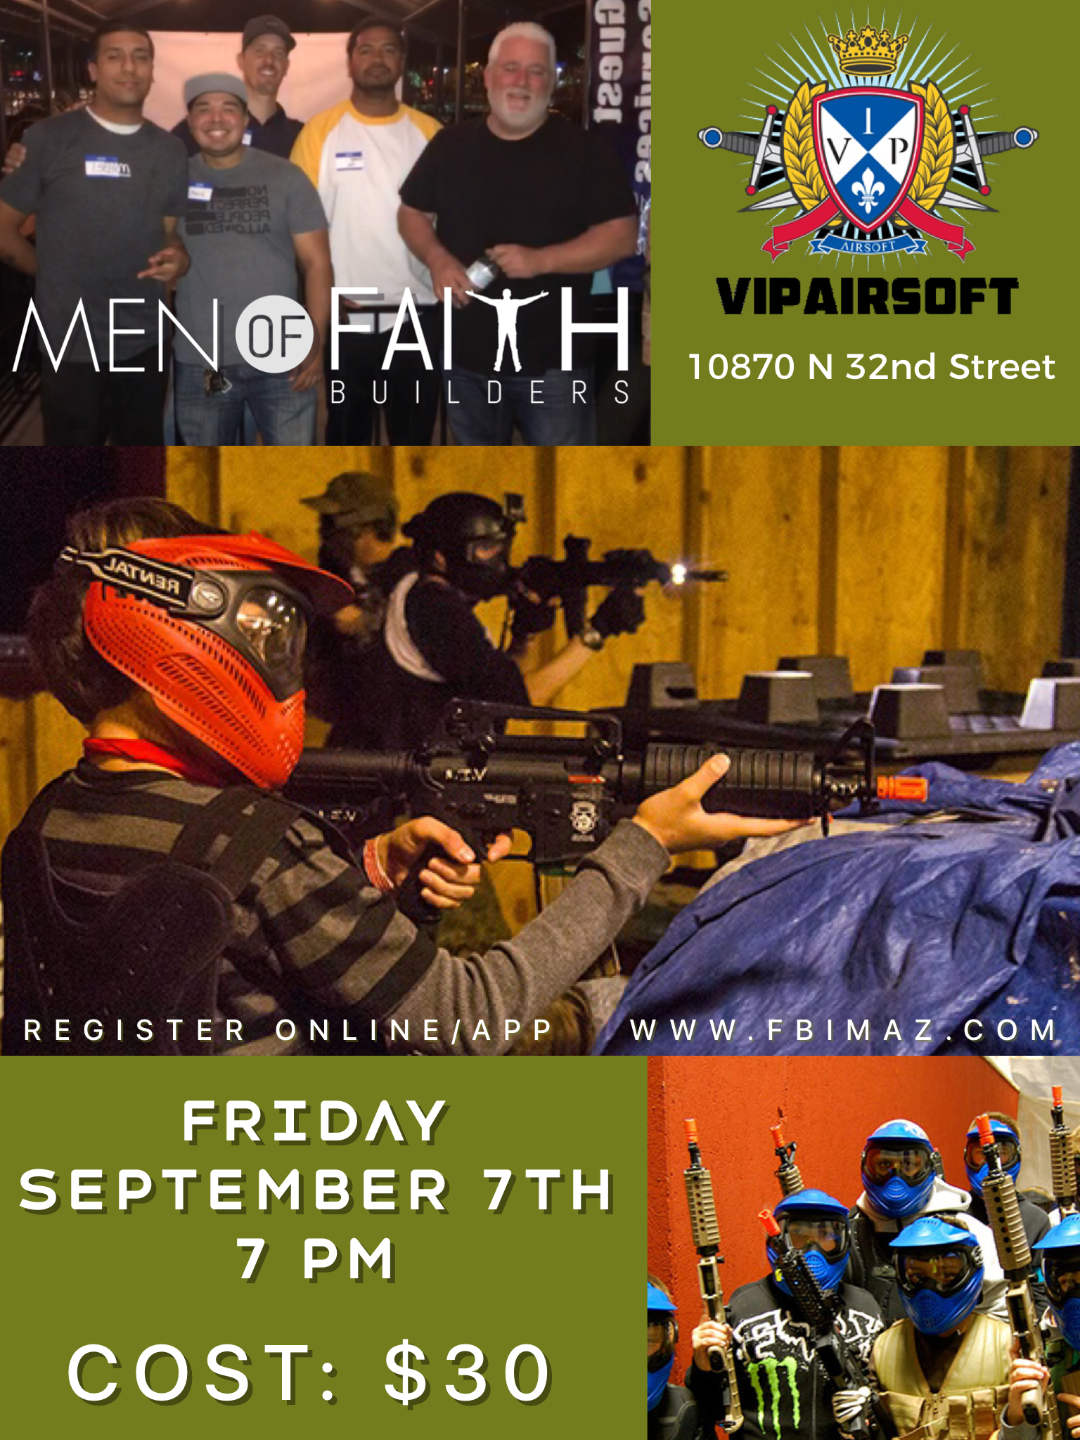 Men of Faith Builders Night Out - Friday, September 7th